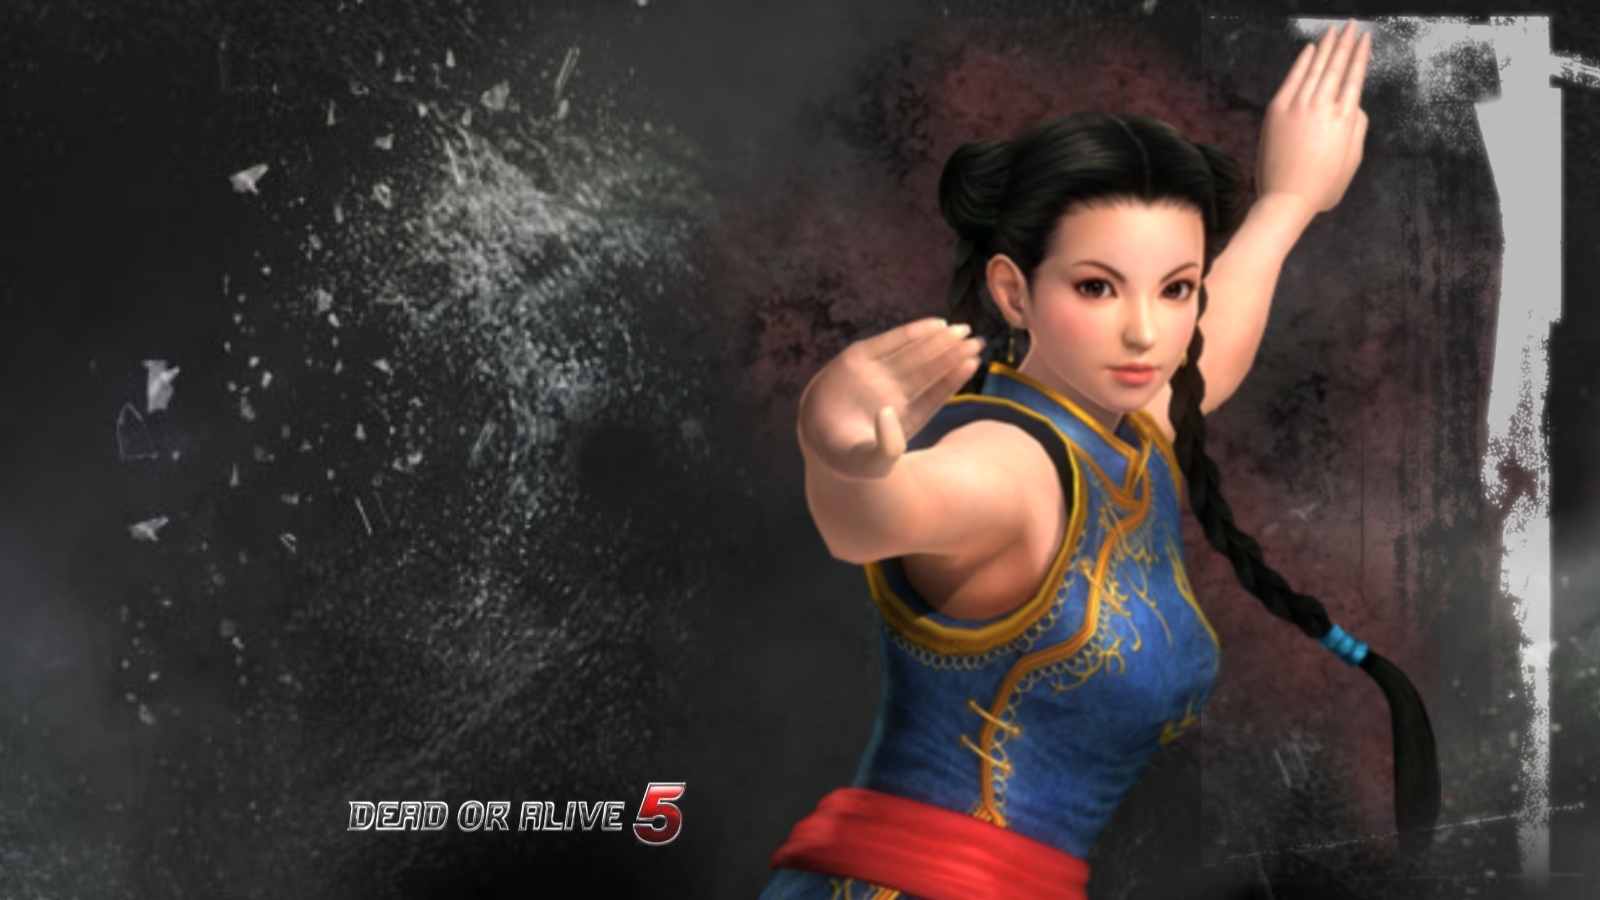 Rendered Bits Fanmade Dead or Alive 5 Game Wallpaper 1600x900